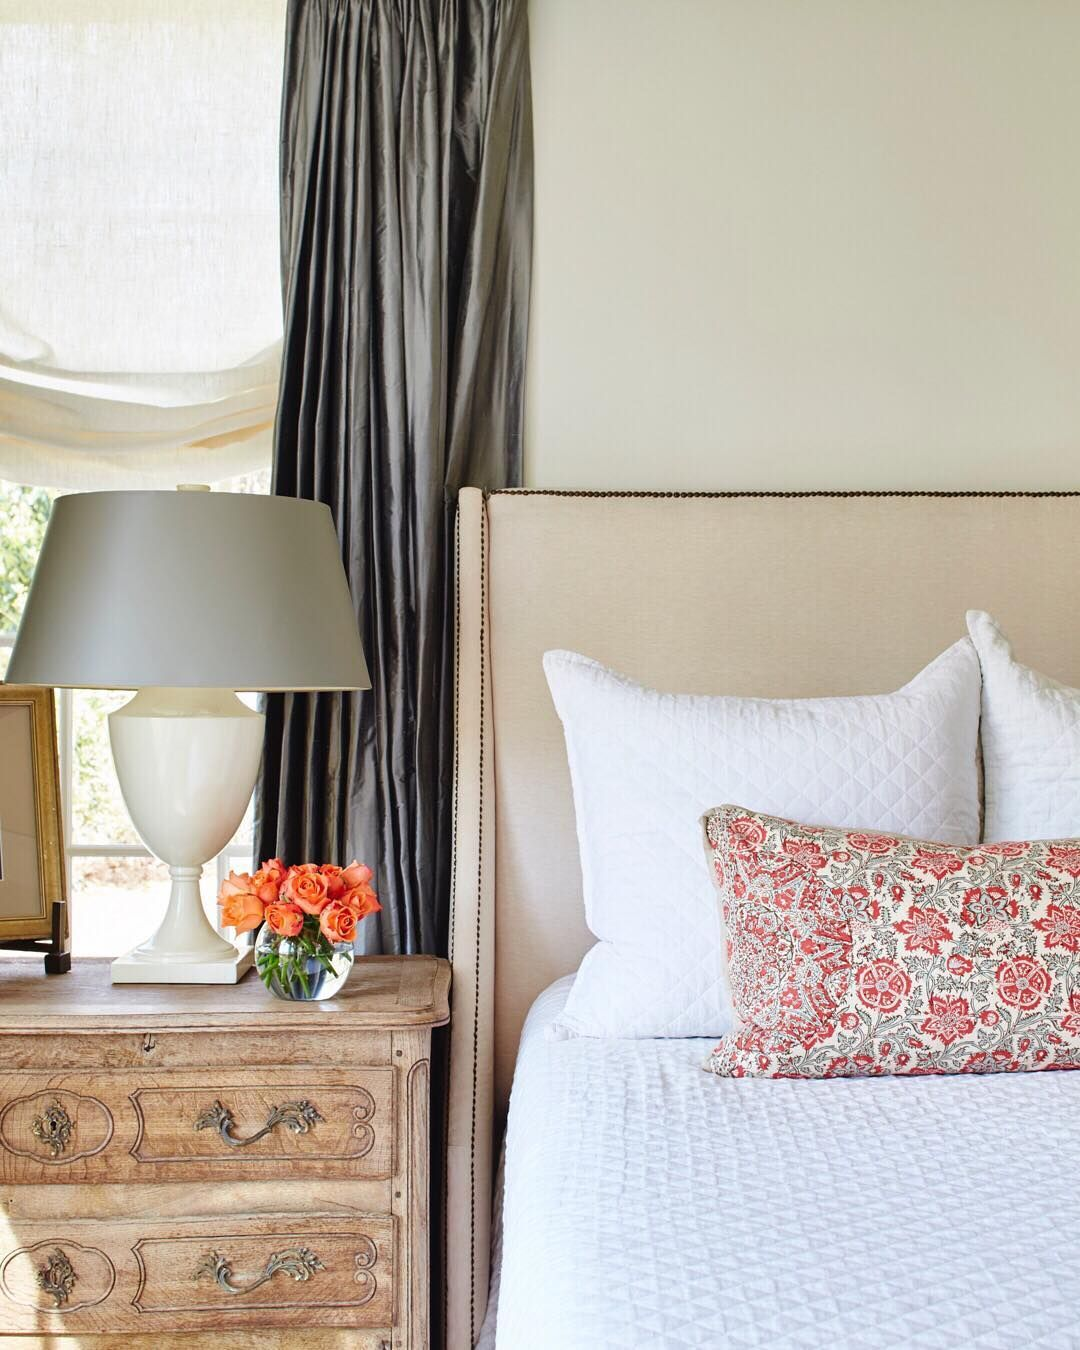 Hamptons Inspired Luxury Home Master Bedroom Robeson: Small Master Bedroom Design Ideas